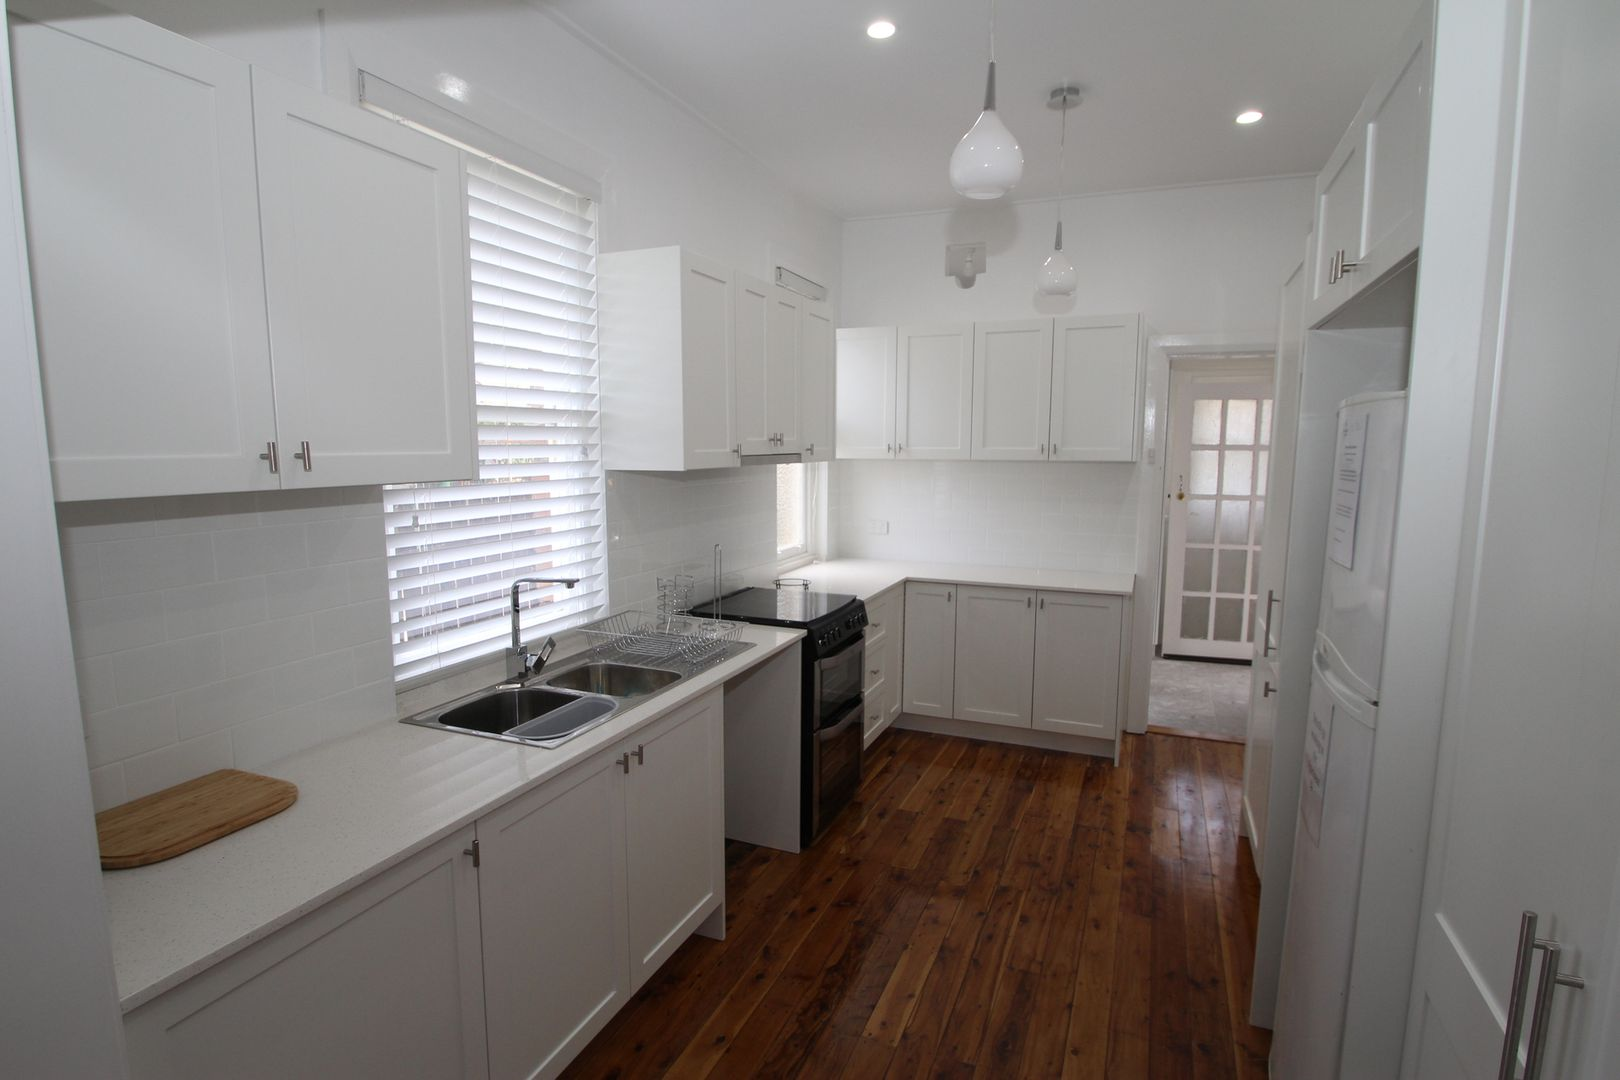 Orange Nsw 2800 4 Beds Apartment For Rent 1200 00 Per Week